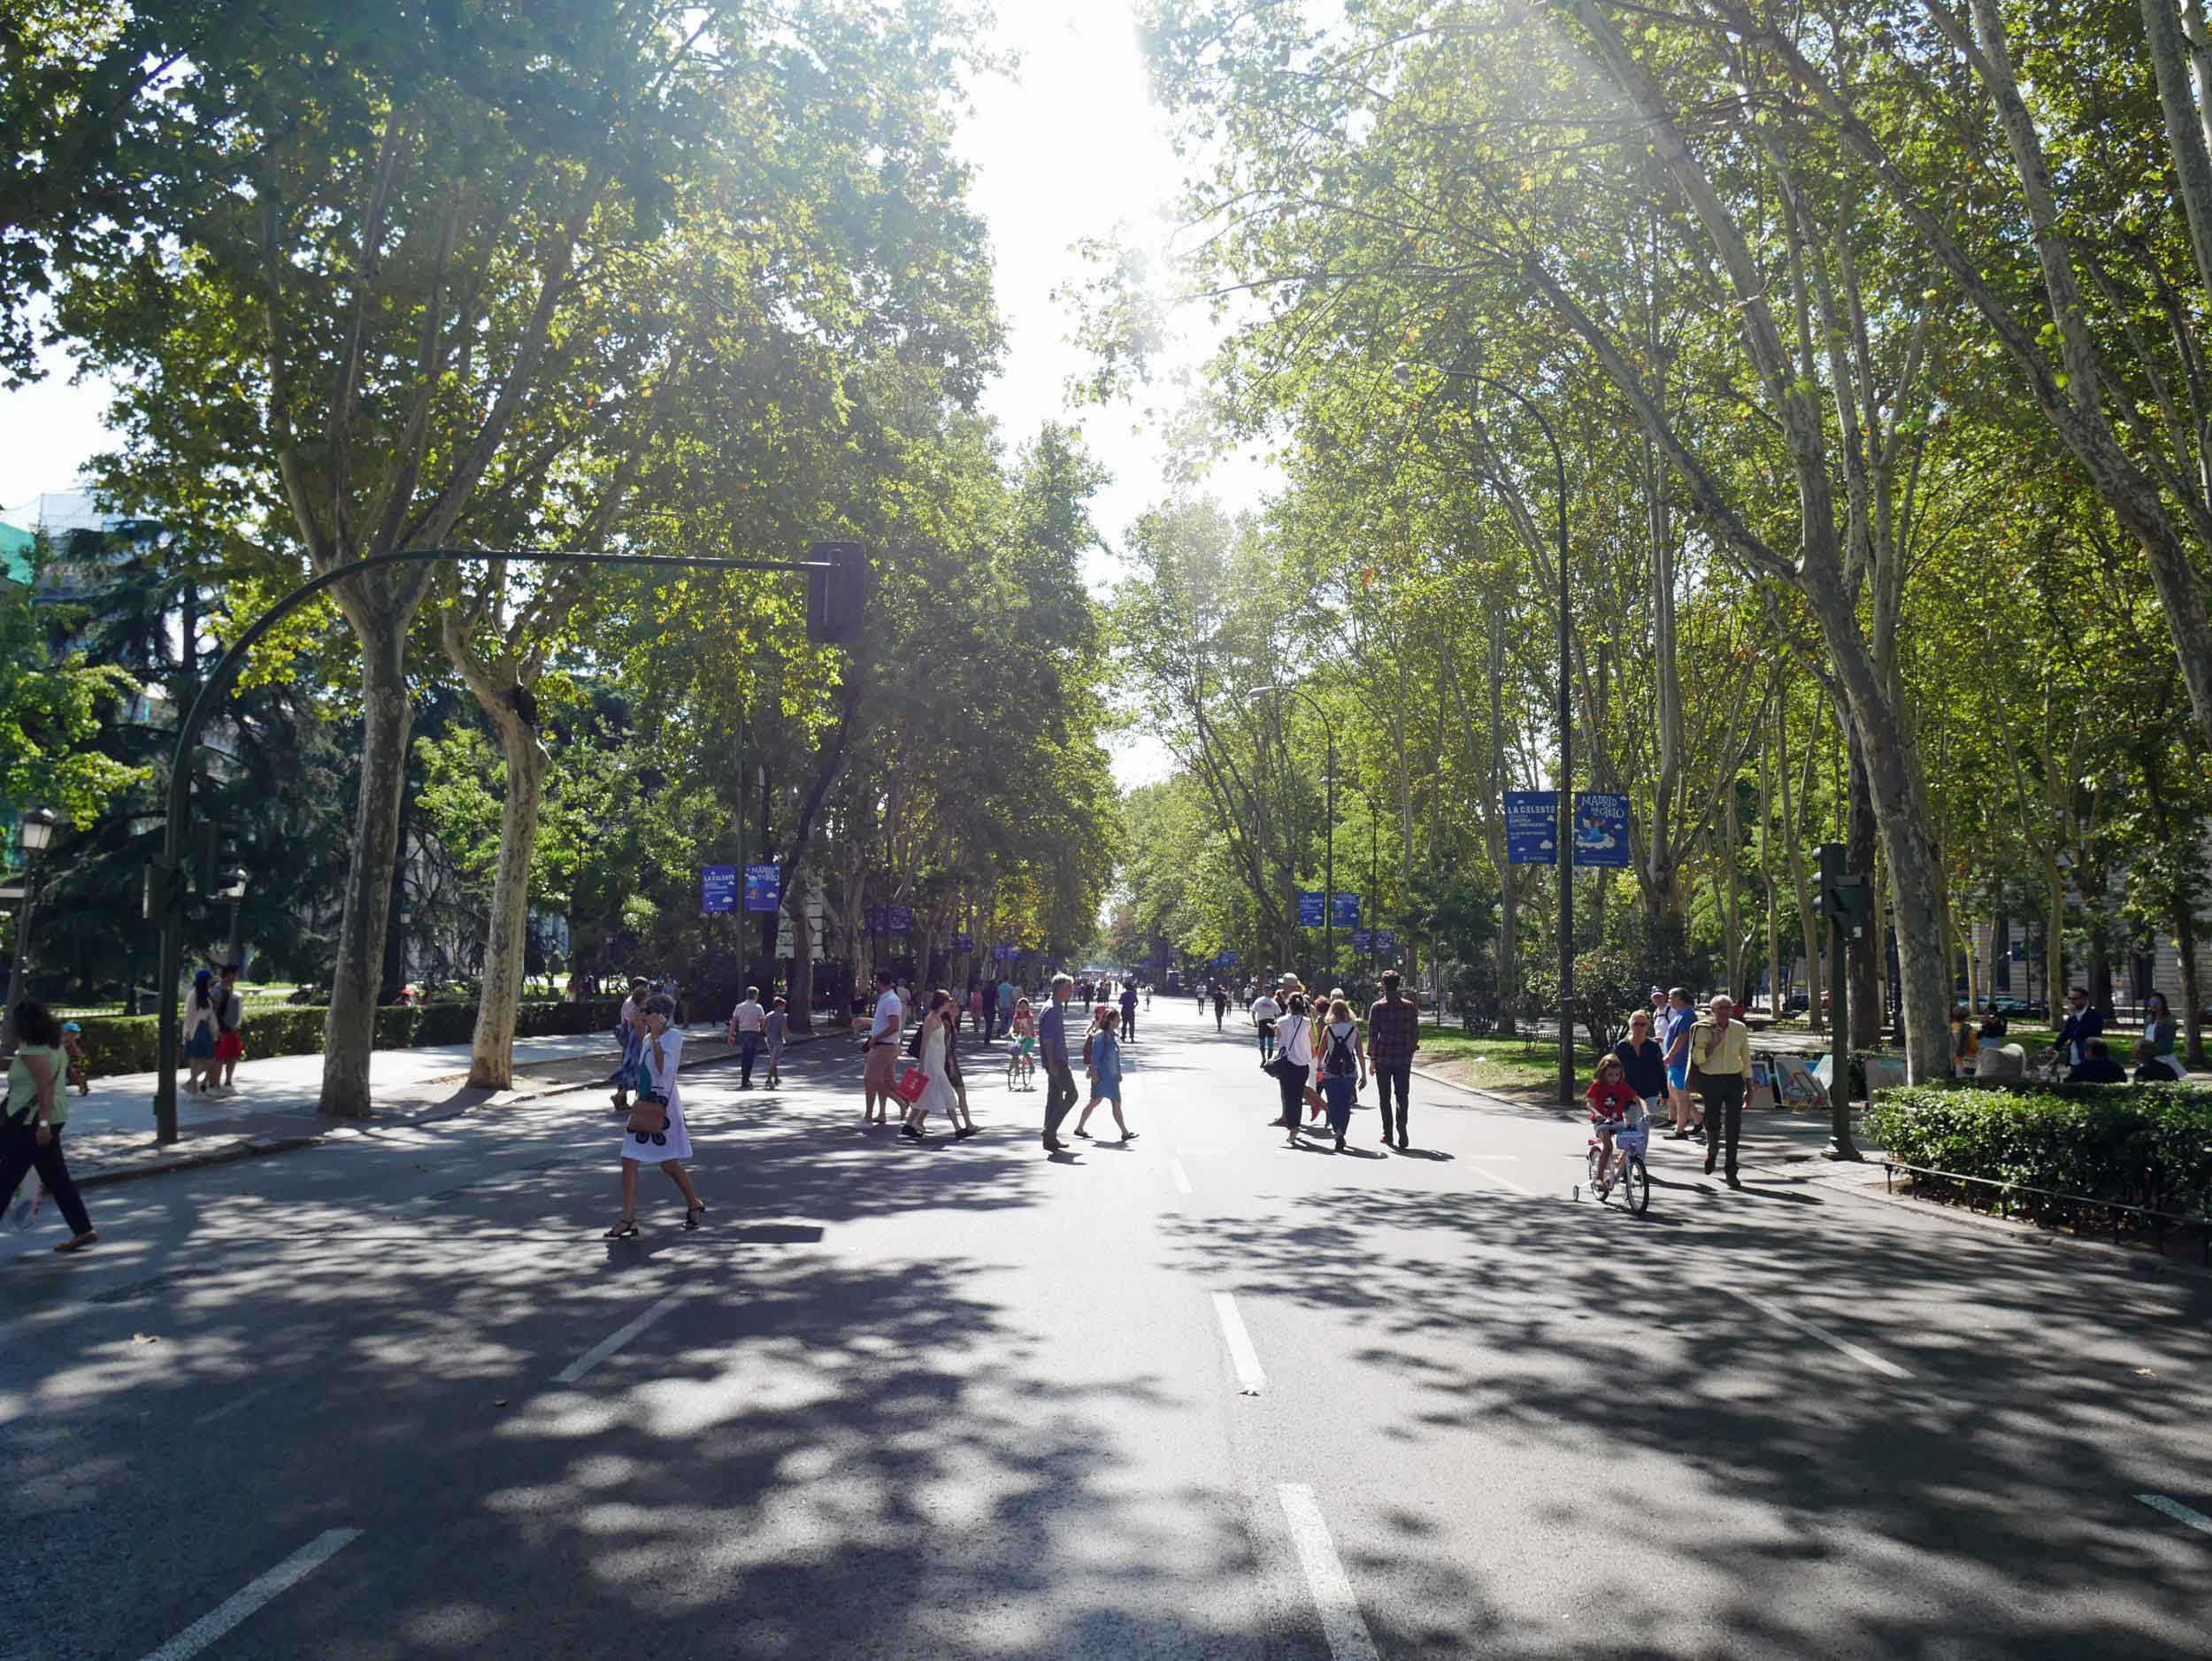 The Paseo del Prado, one of the main boulevards of Madrid, happened to be closed that morning to motor traffic allowing pedestrians to take to the streets!